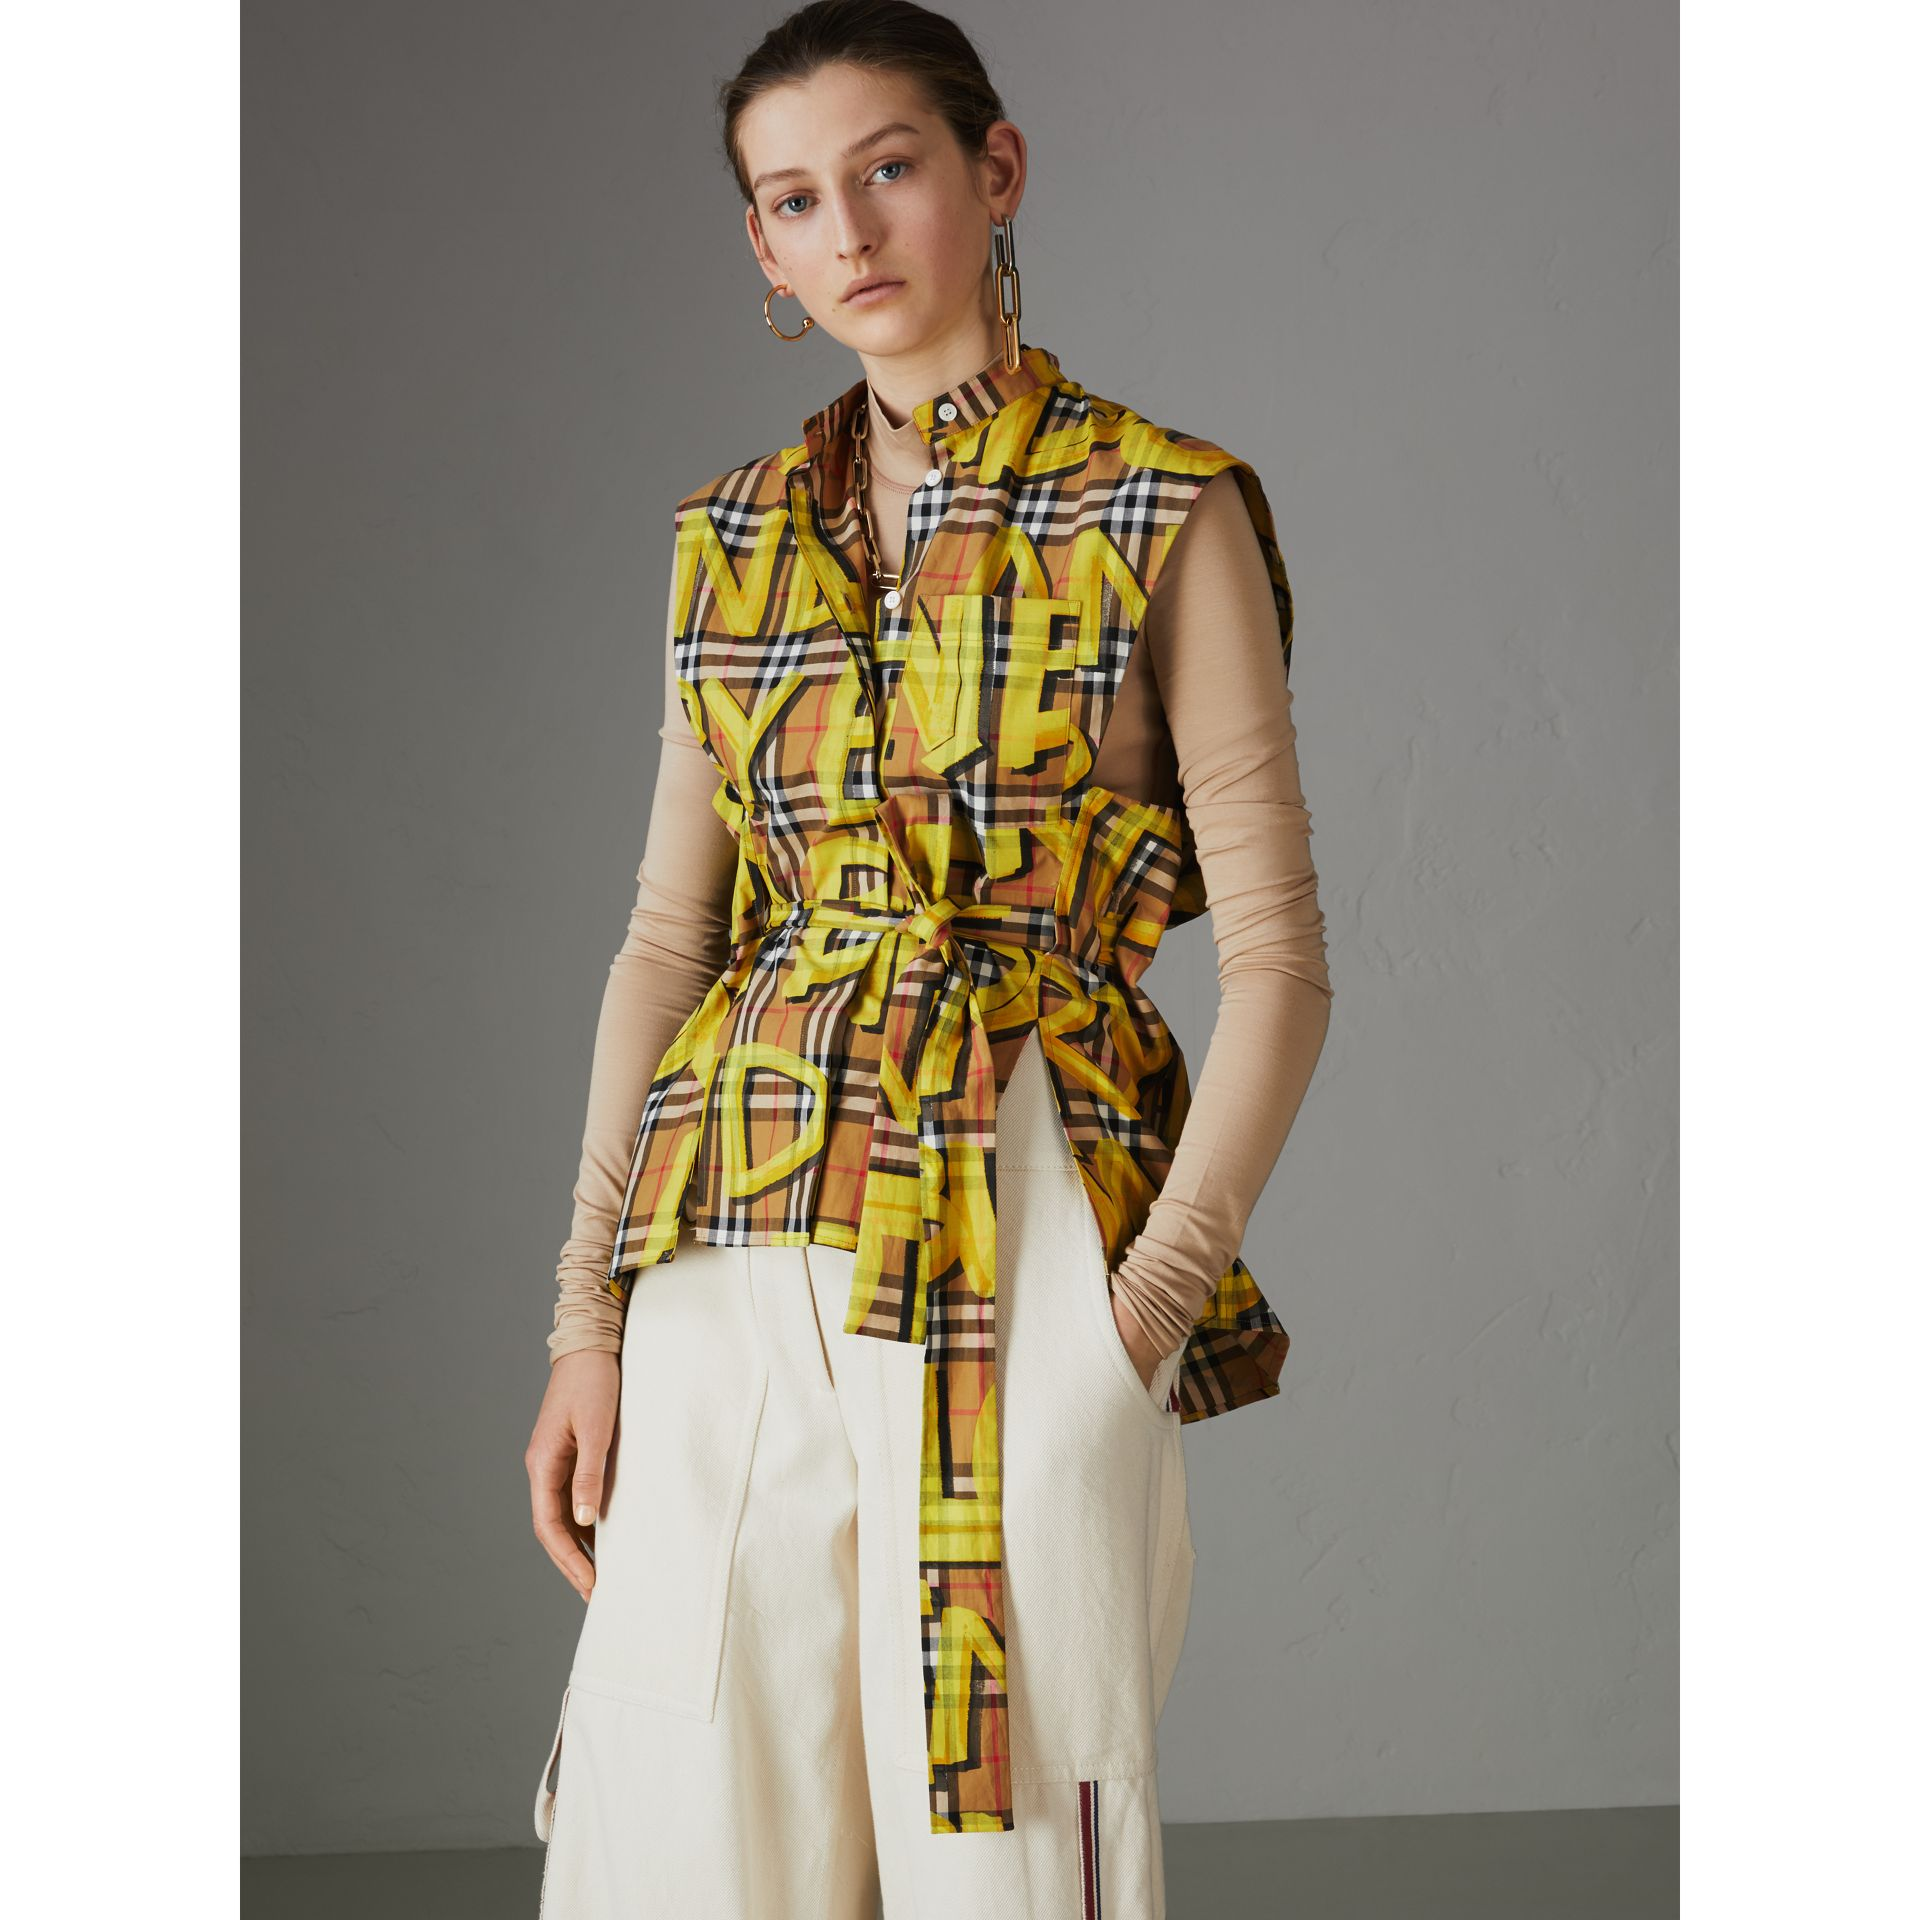 Sleeveless Graffiti Print Vintage Check Cotton Shirt in Bright Yellow - Women | Burberry - gallery image 4